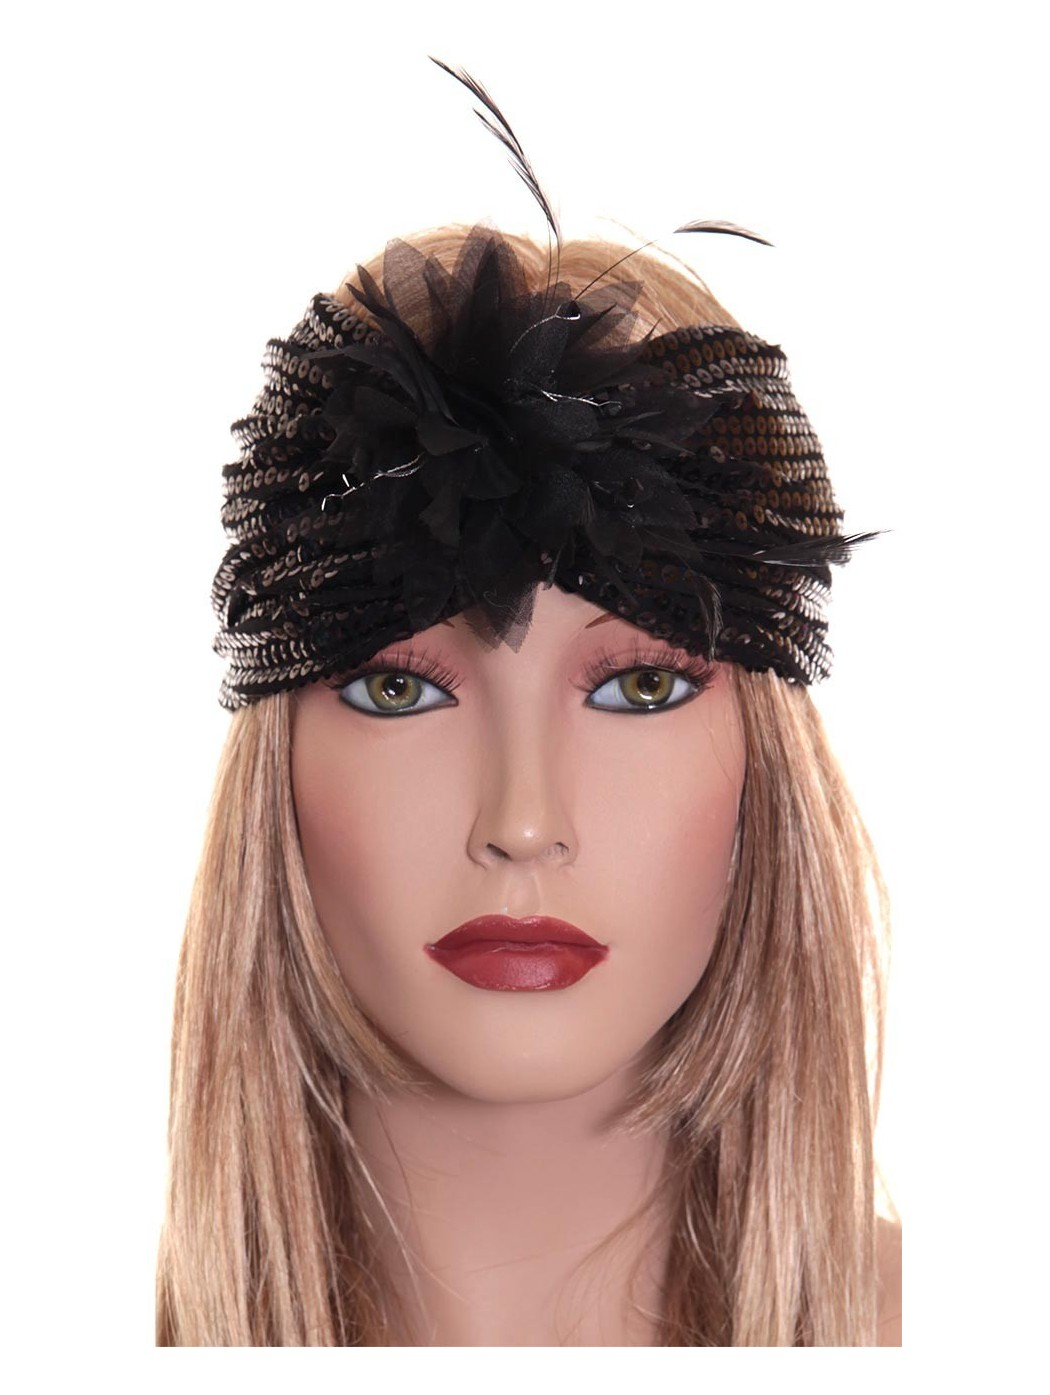 Sonia Peña head band